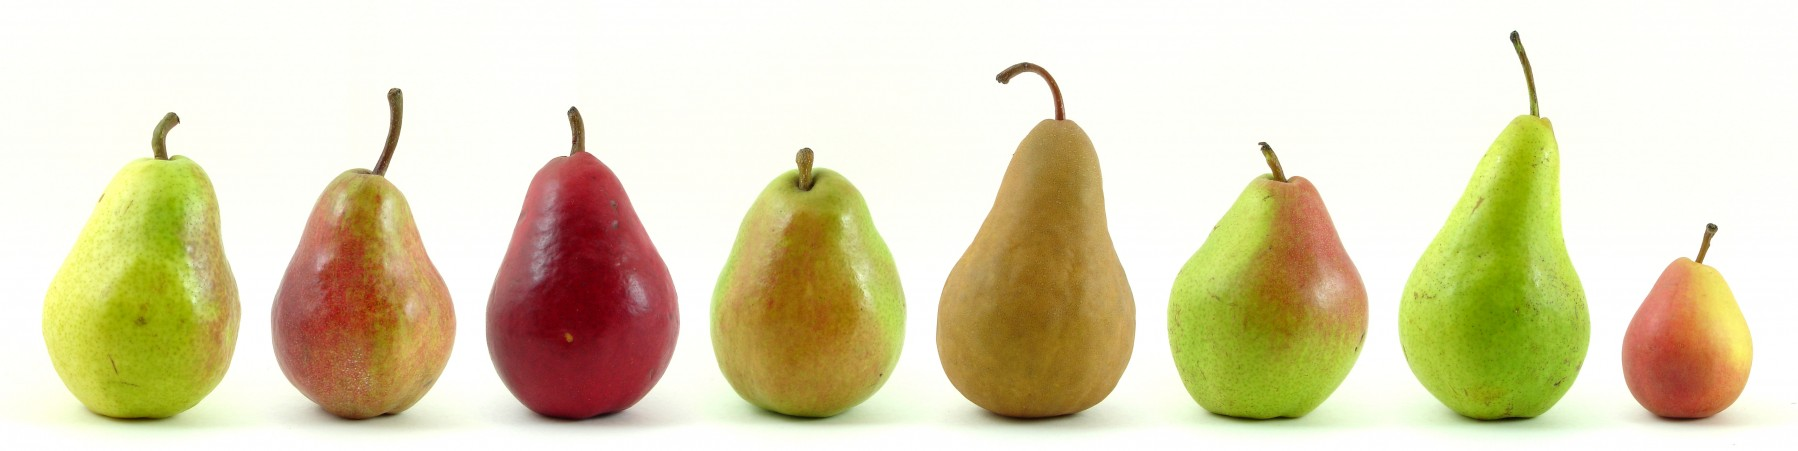 Eight varieties of pears